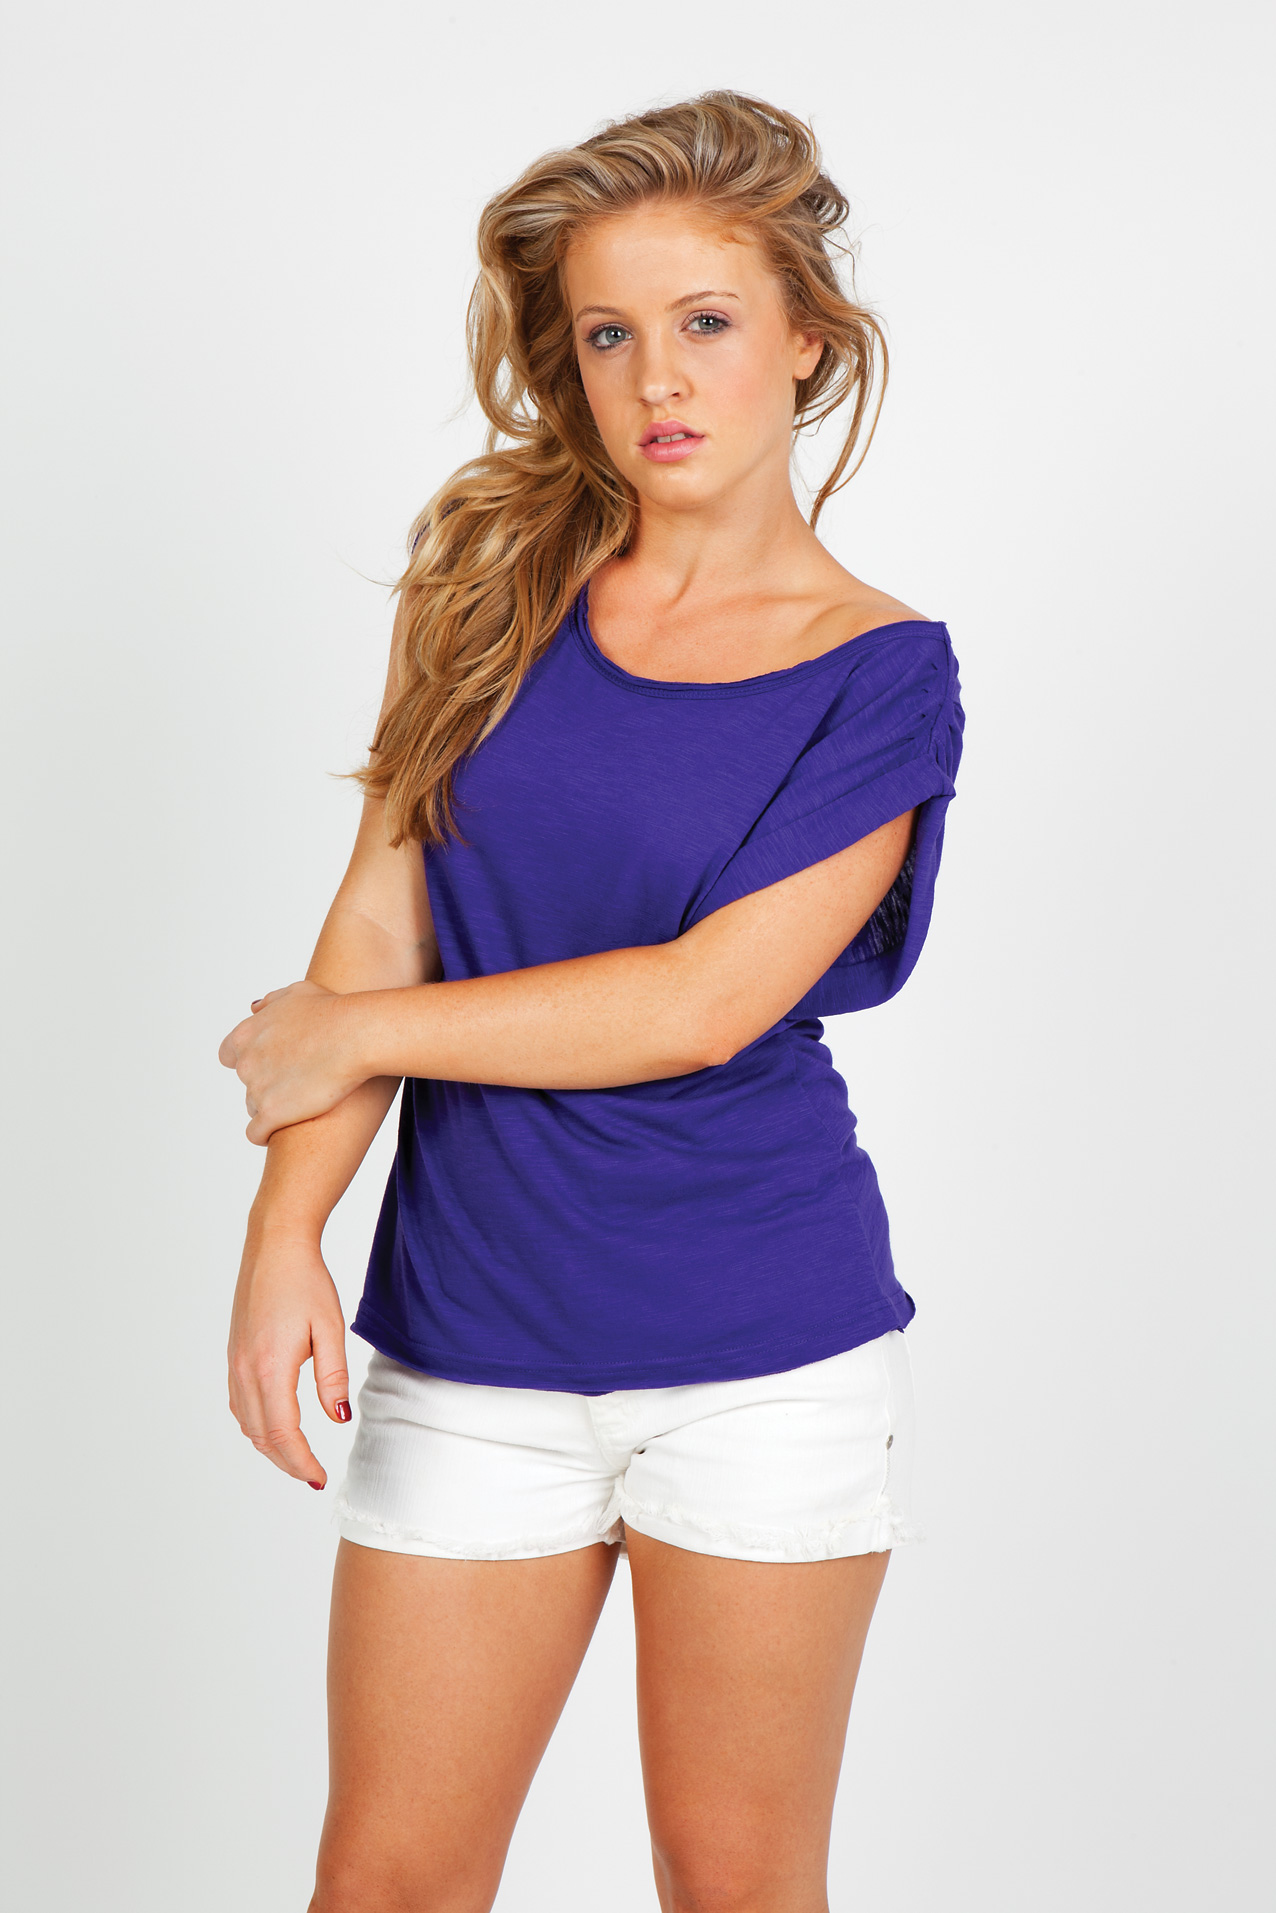 Ladies Wide and Distressed Rib Neck Tee